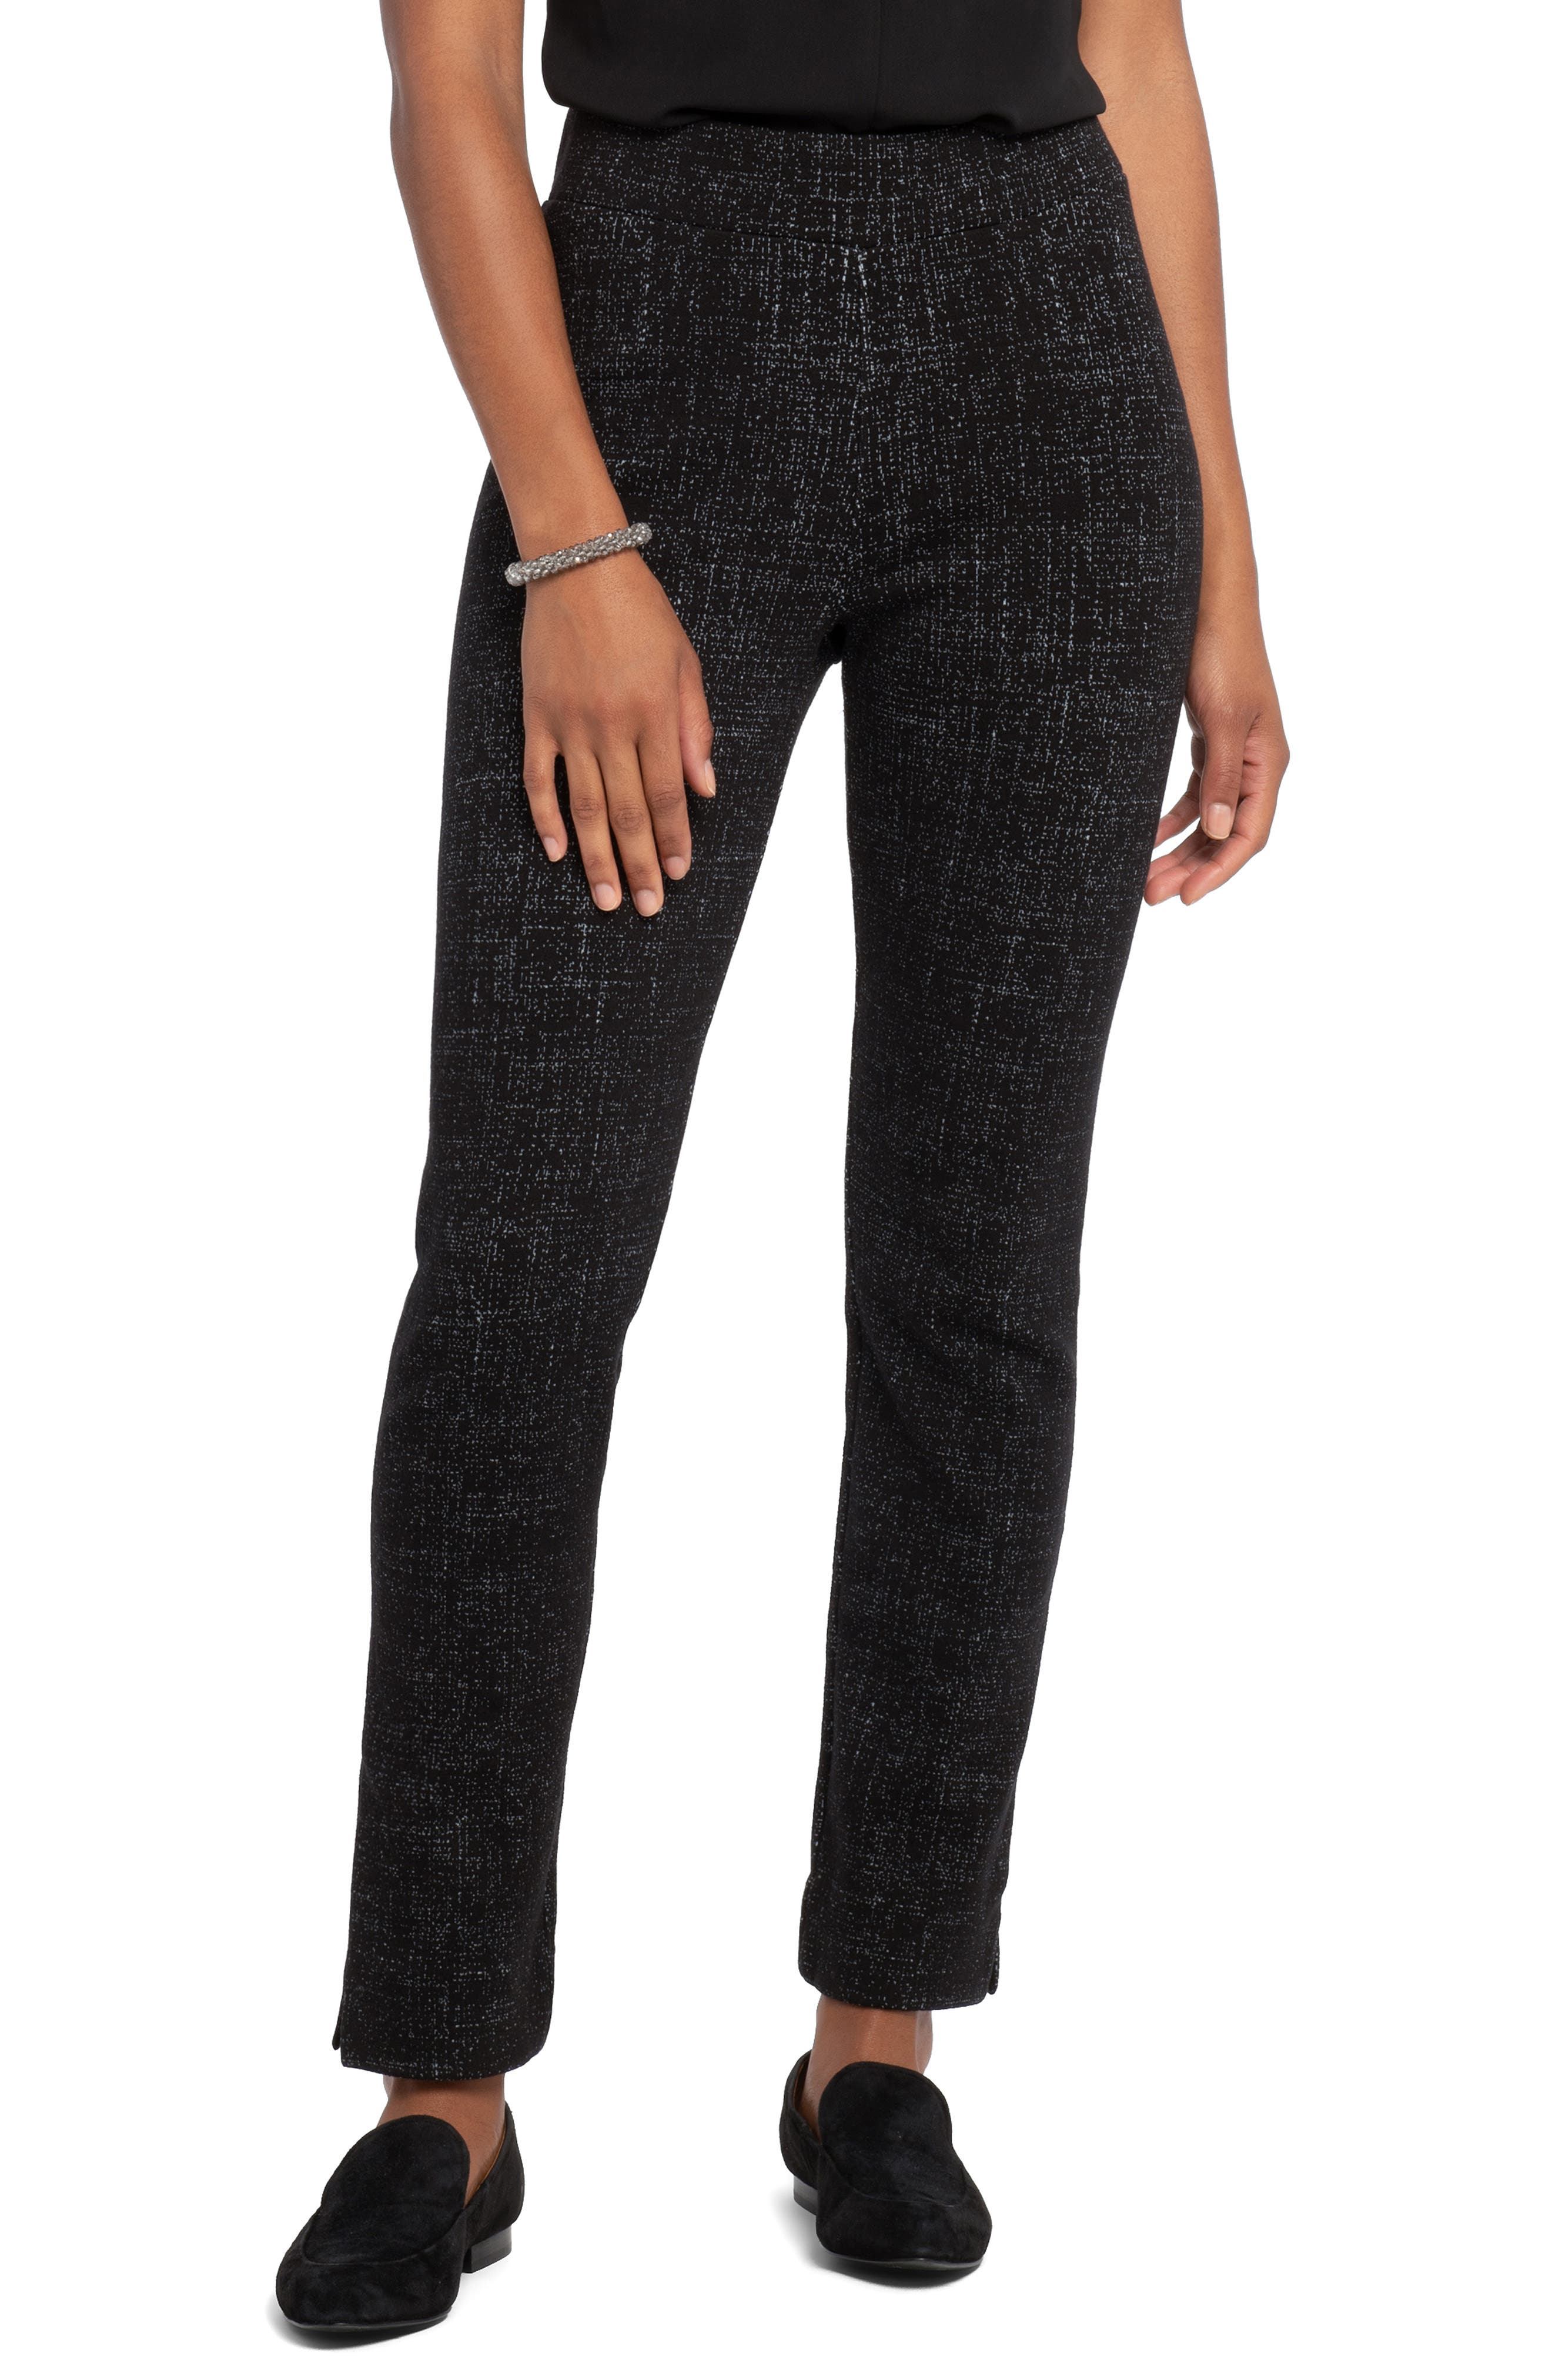 Pants with office polish are made as comfortable as leggings in a pull-on style of cotton-blend knit with a tweedy print and side-slit hems. Style Name: Nic+Zoe Sidetrack Skinny Pants. Style Number: 5951288. Available in stores.